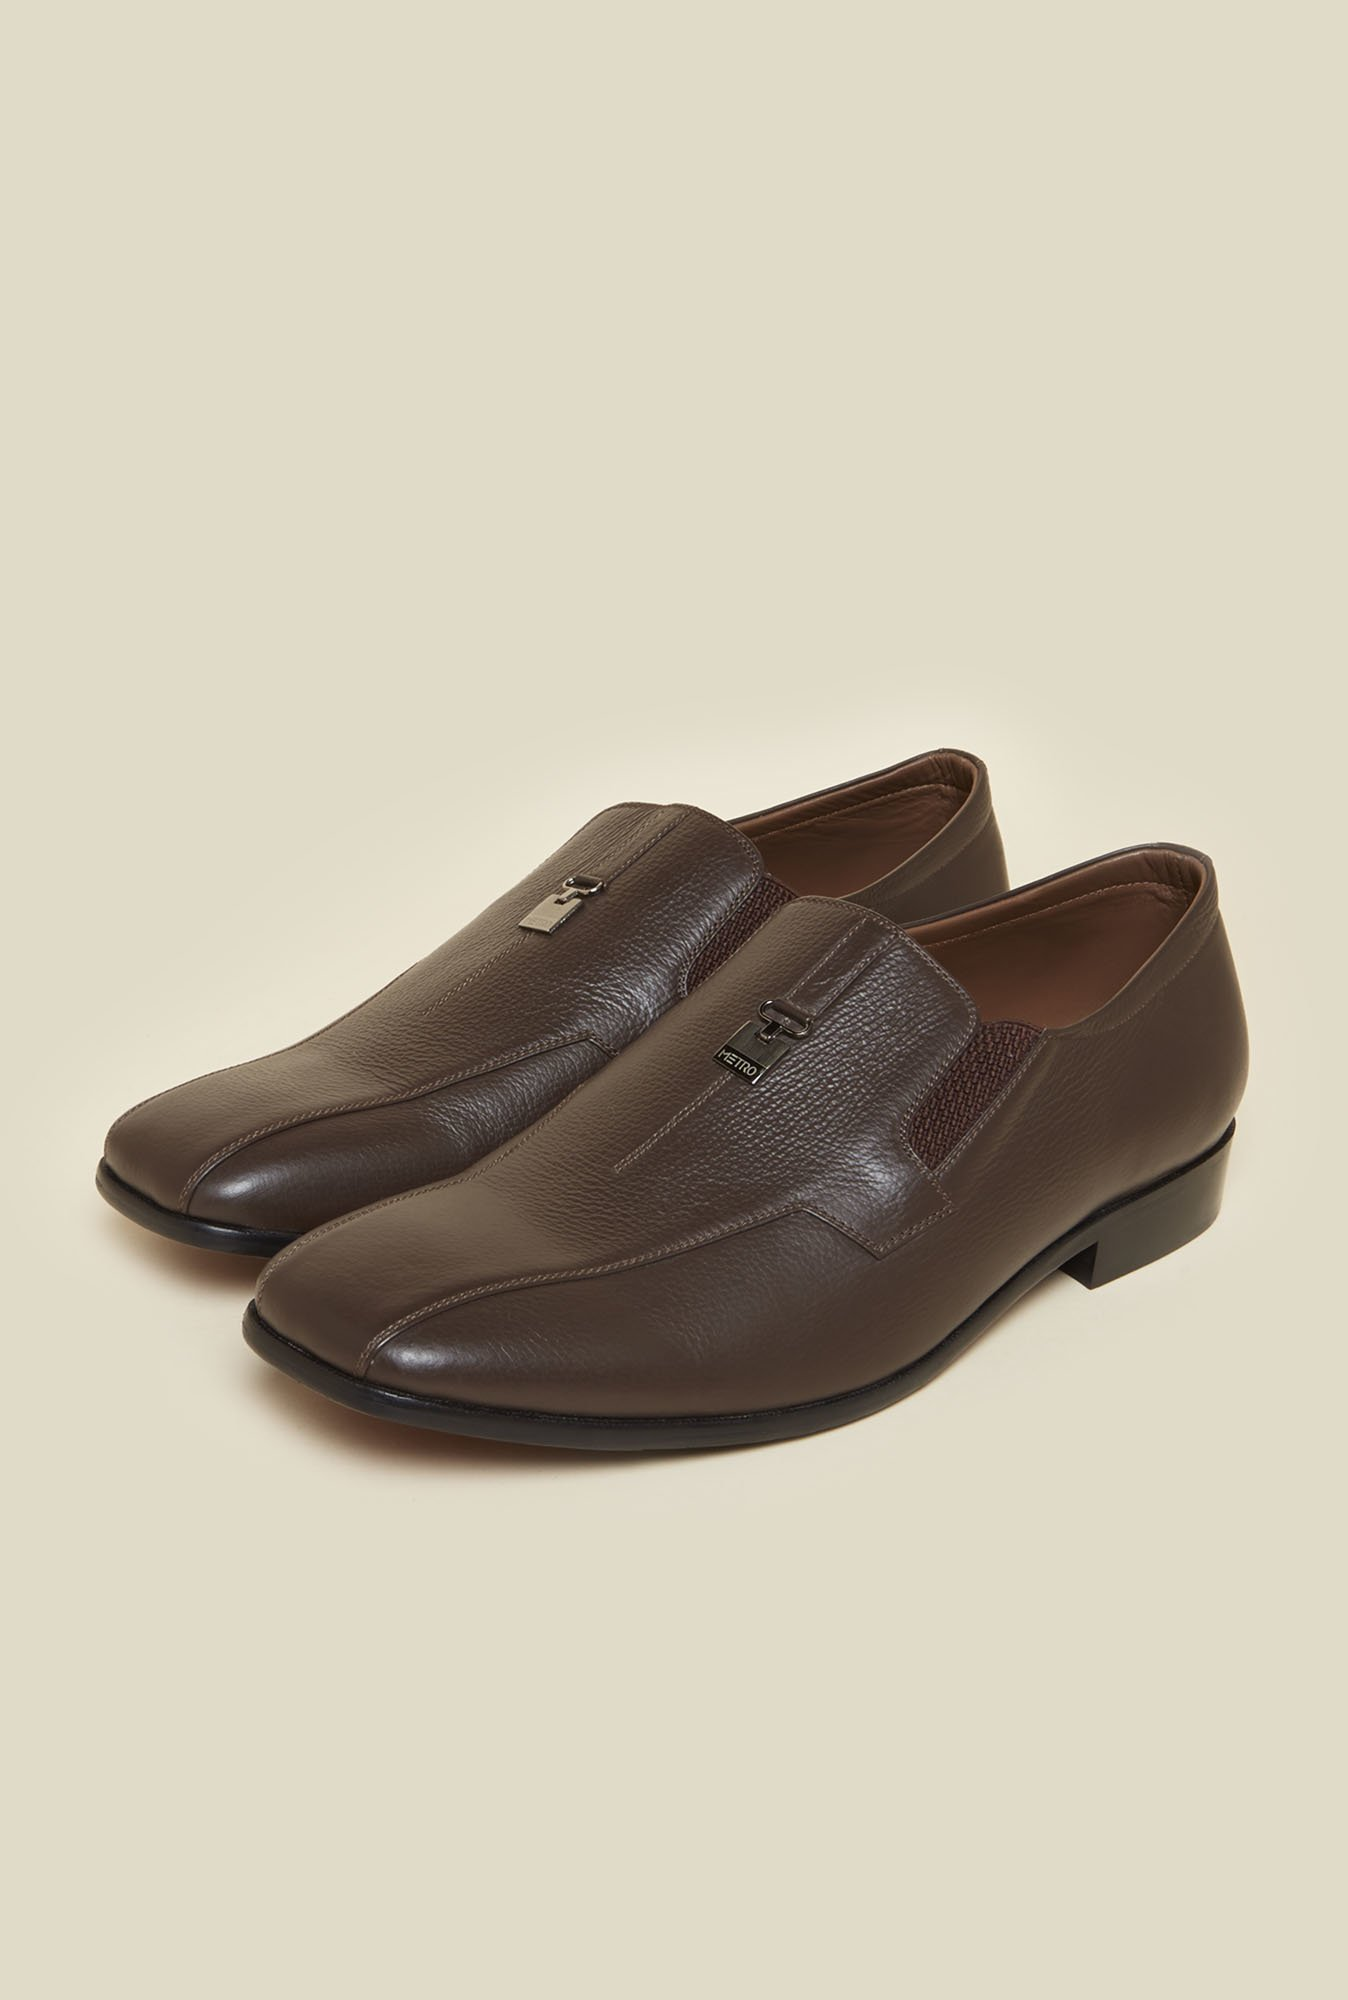 Da Vinchi by Metro Brown Leather Shoes